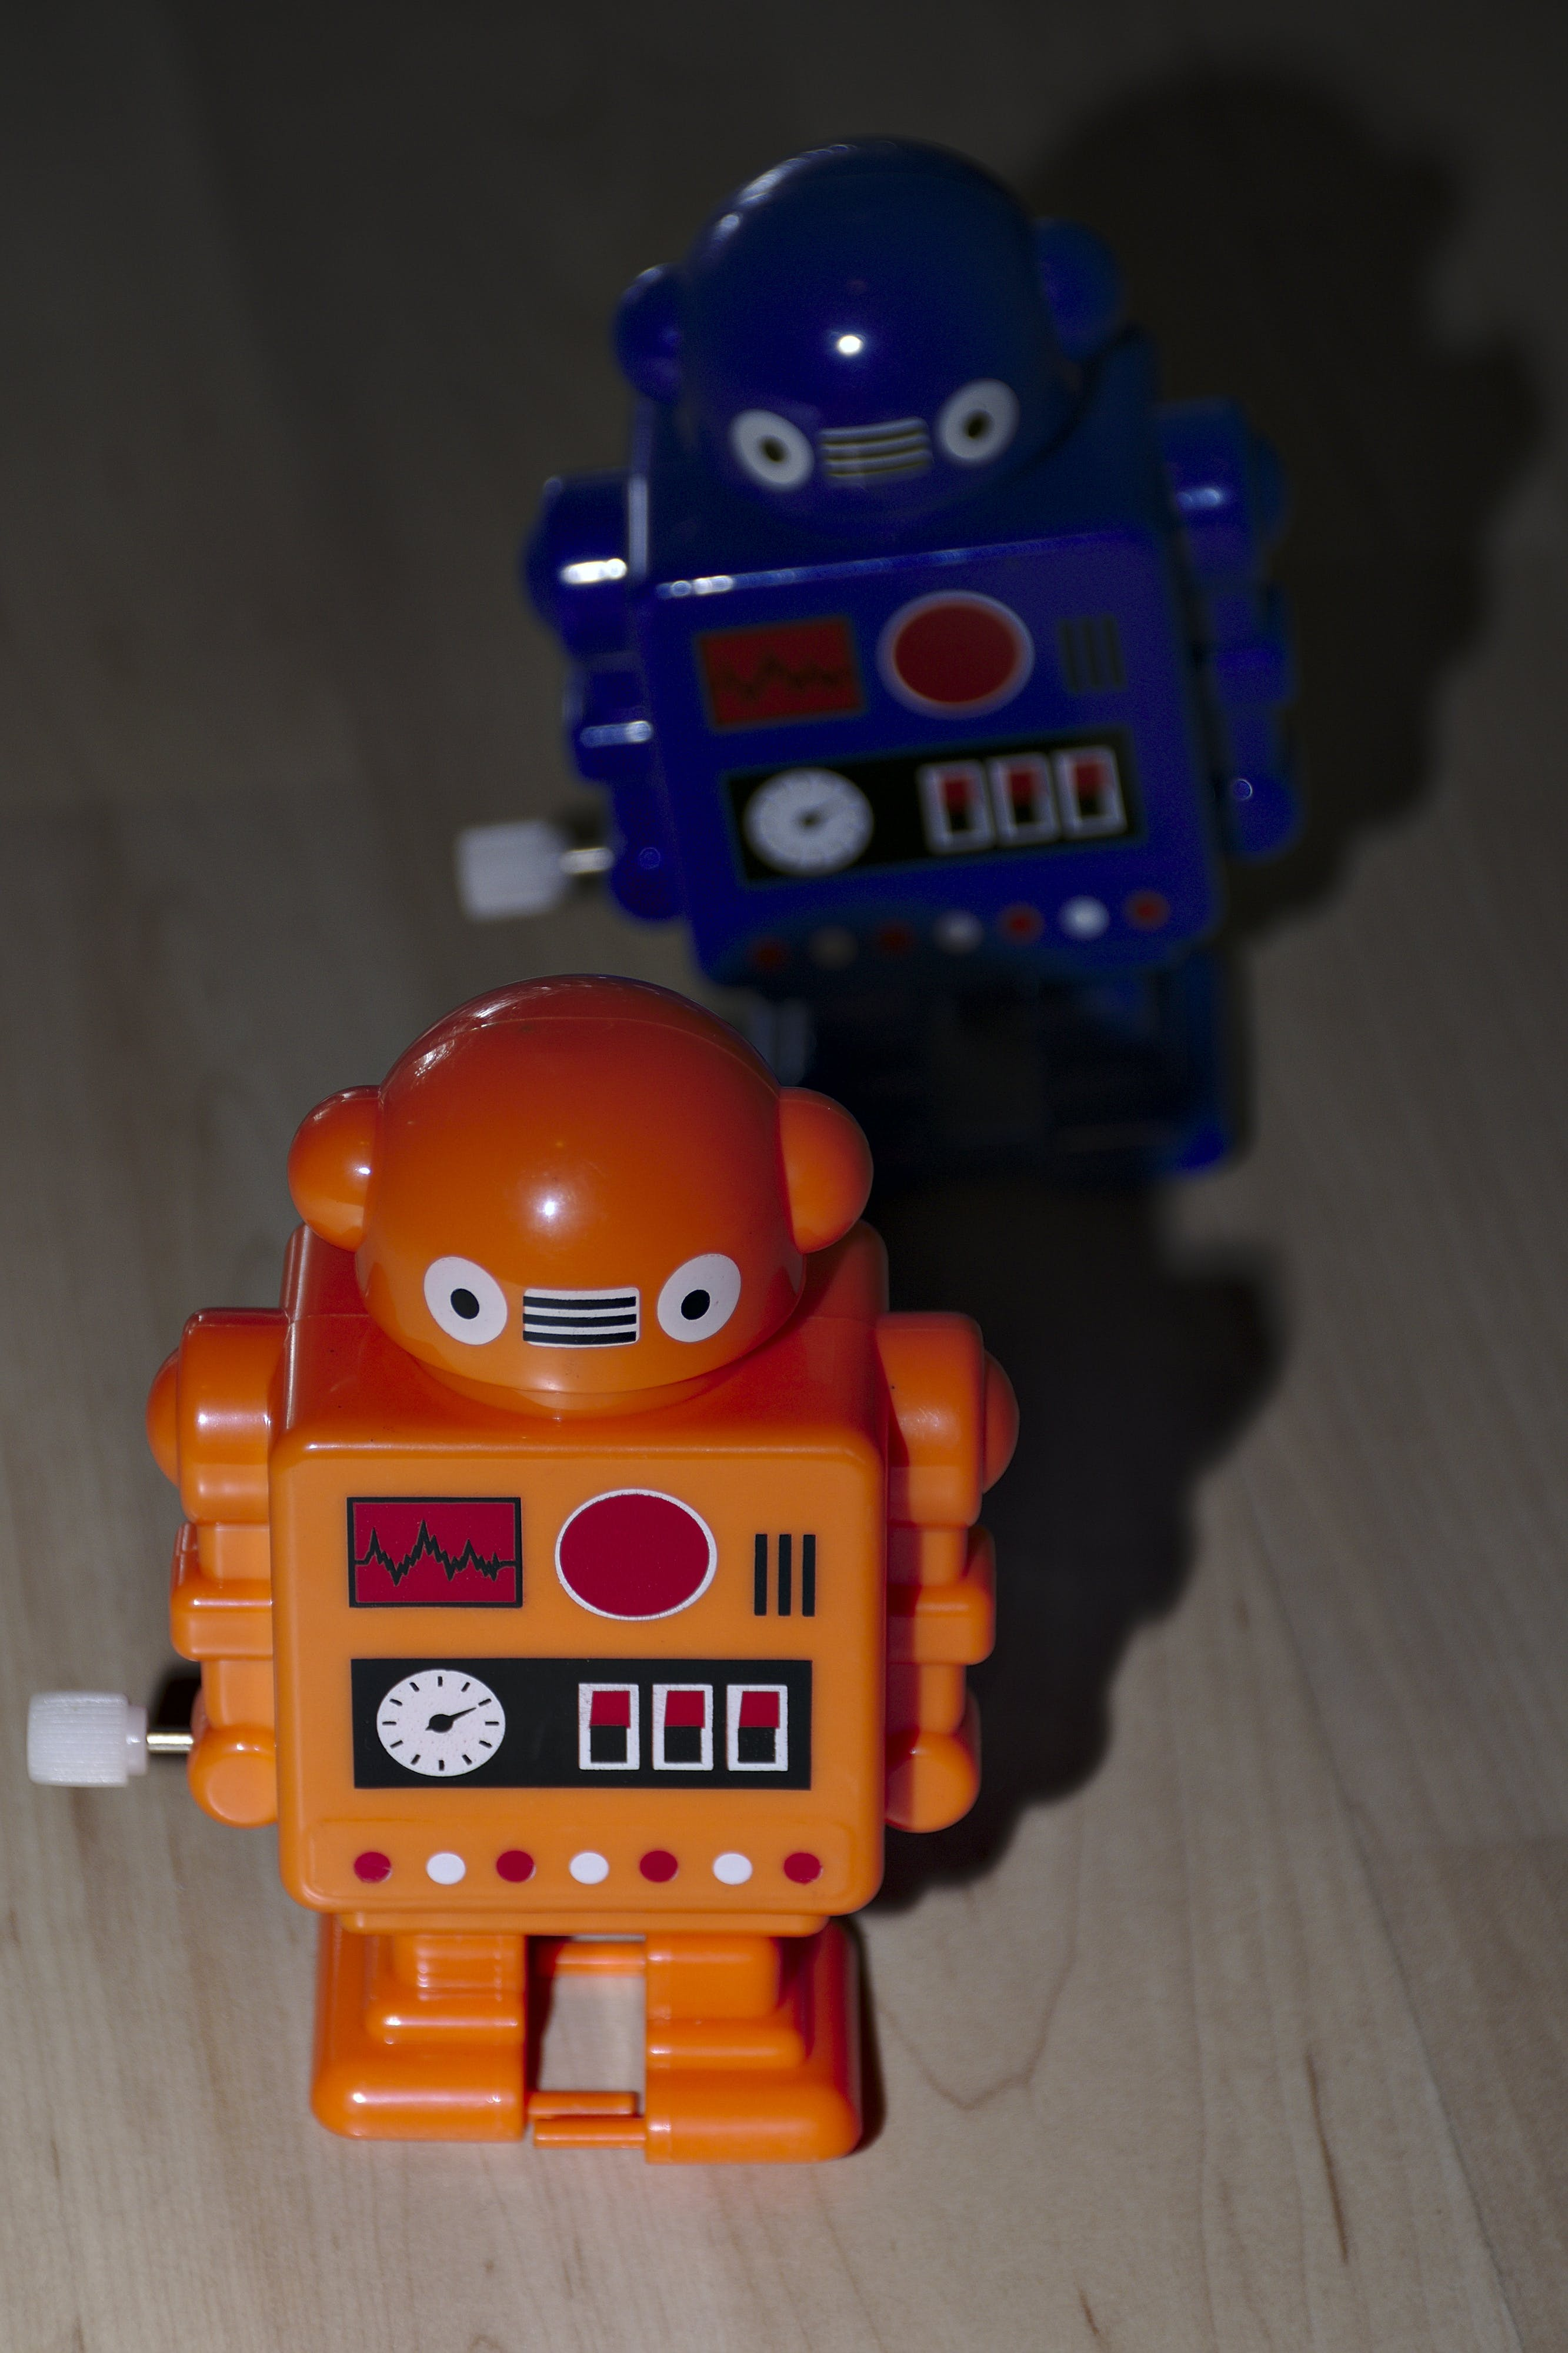 Free stock photo of android phone, android wallpaper, rise of the robots, robot